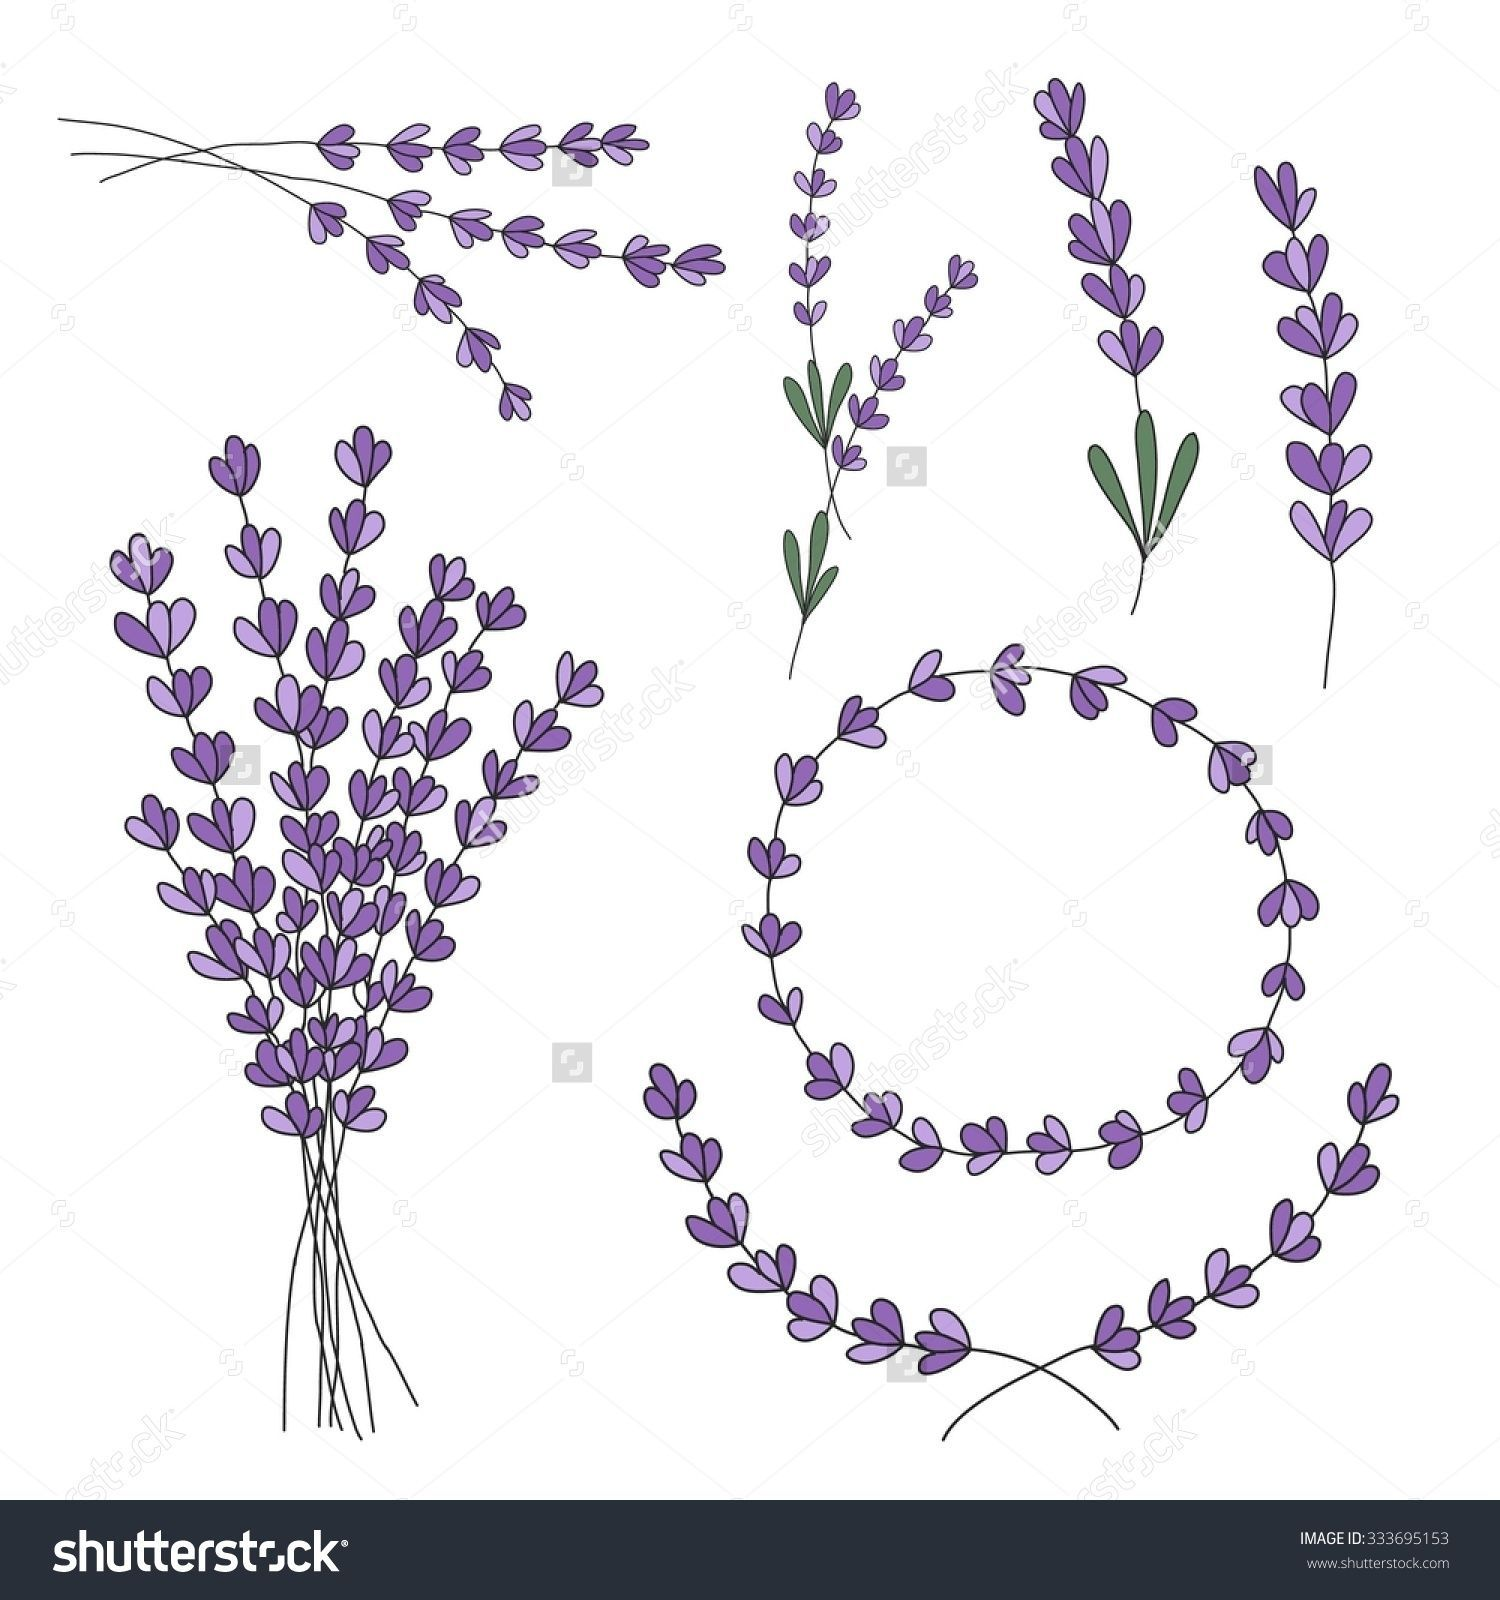 Lavender Drawing Google Search Bullet Journal Art Bullet Journal Ideas Pages Bullet Journal Banner